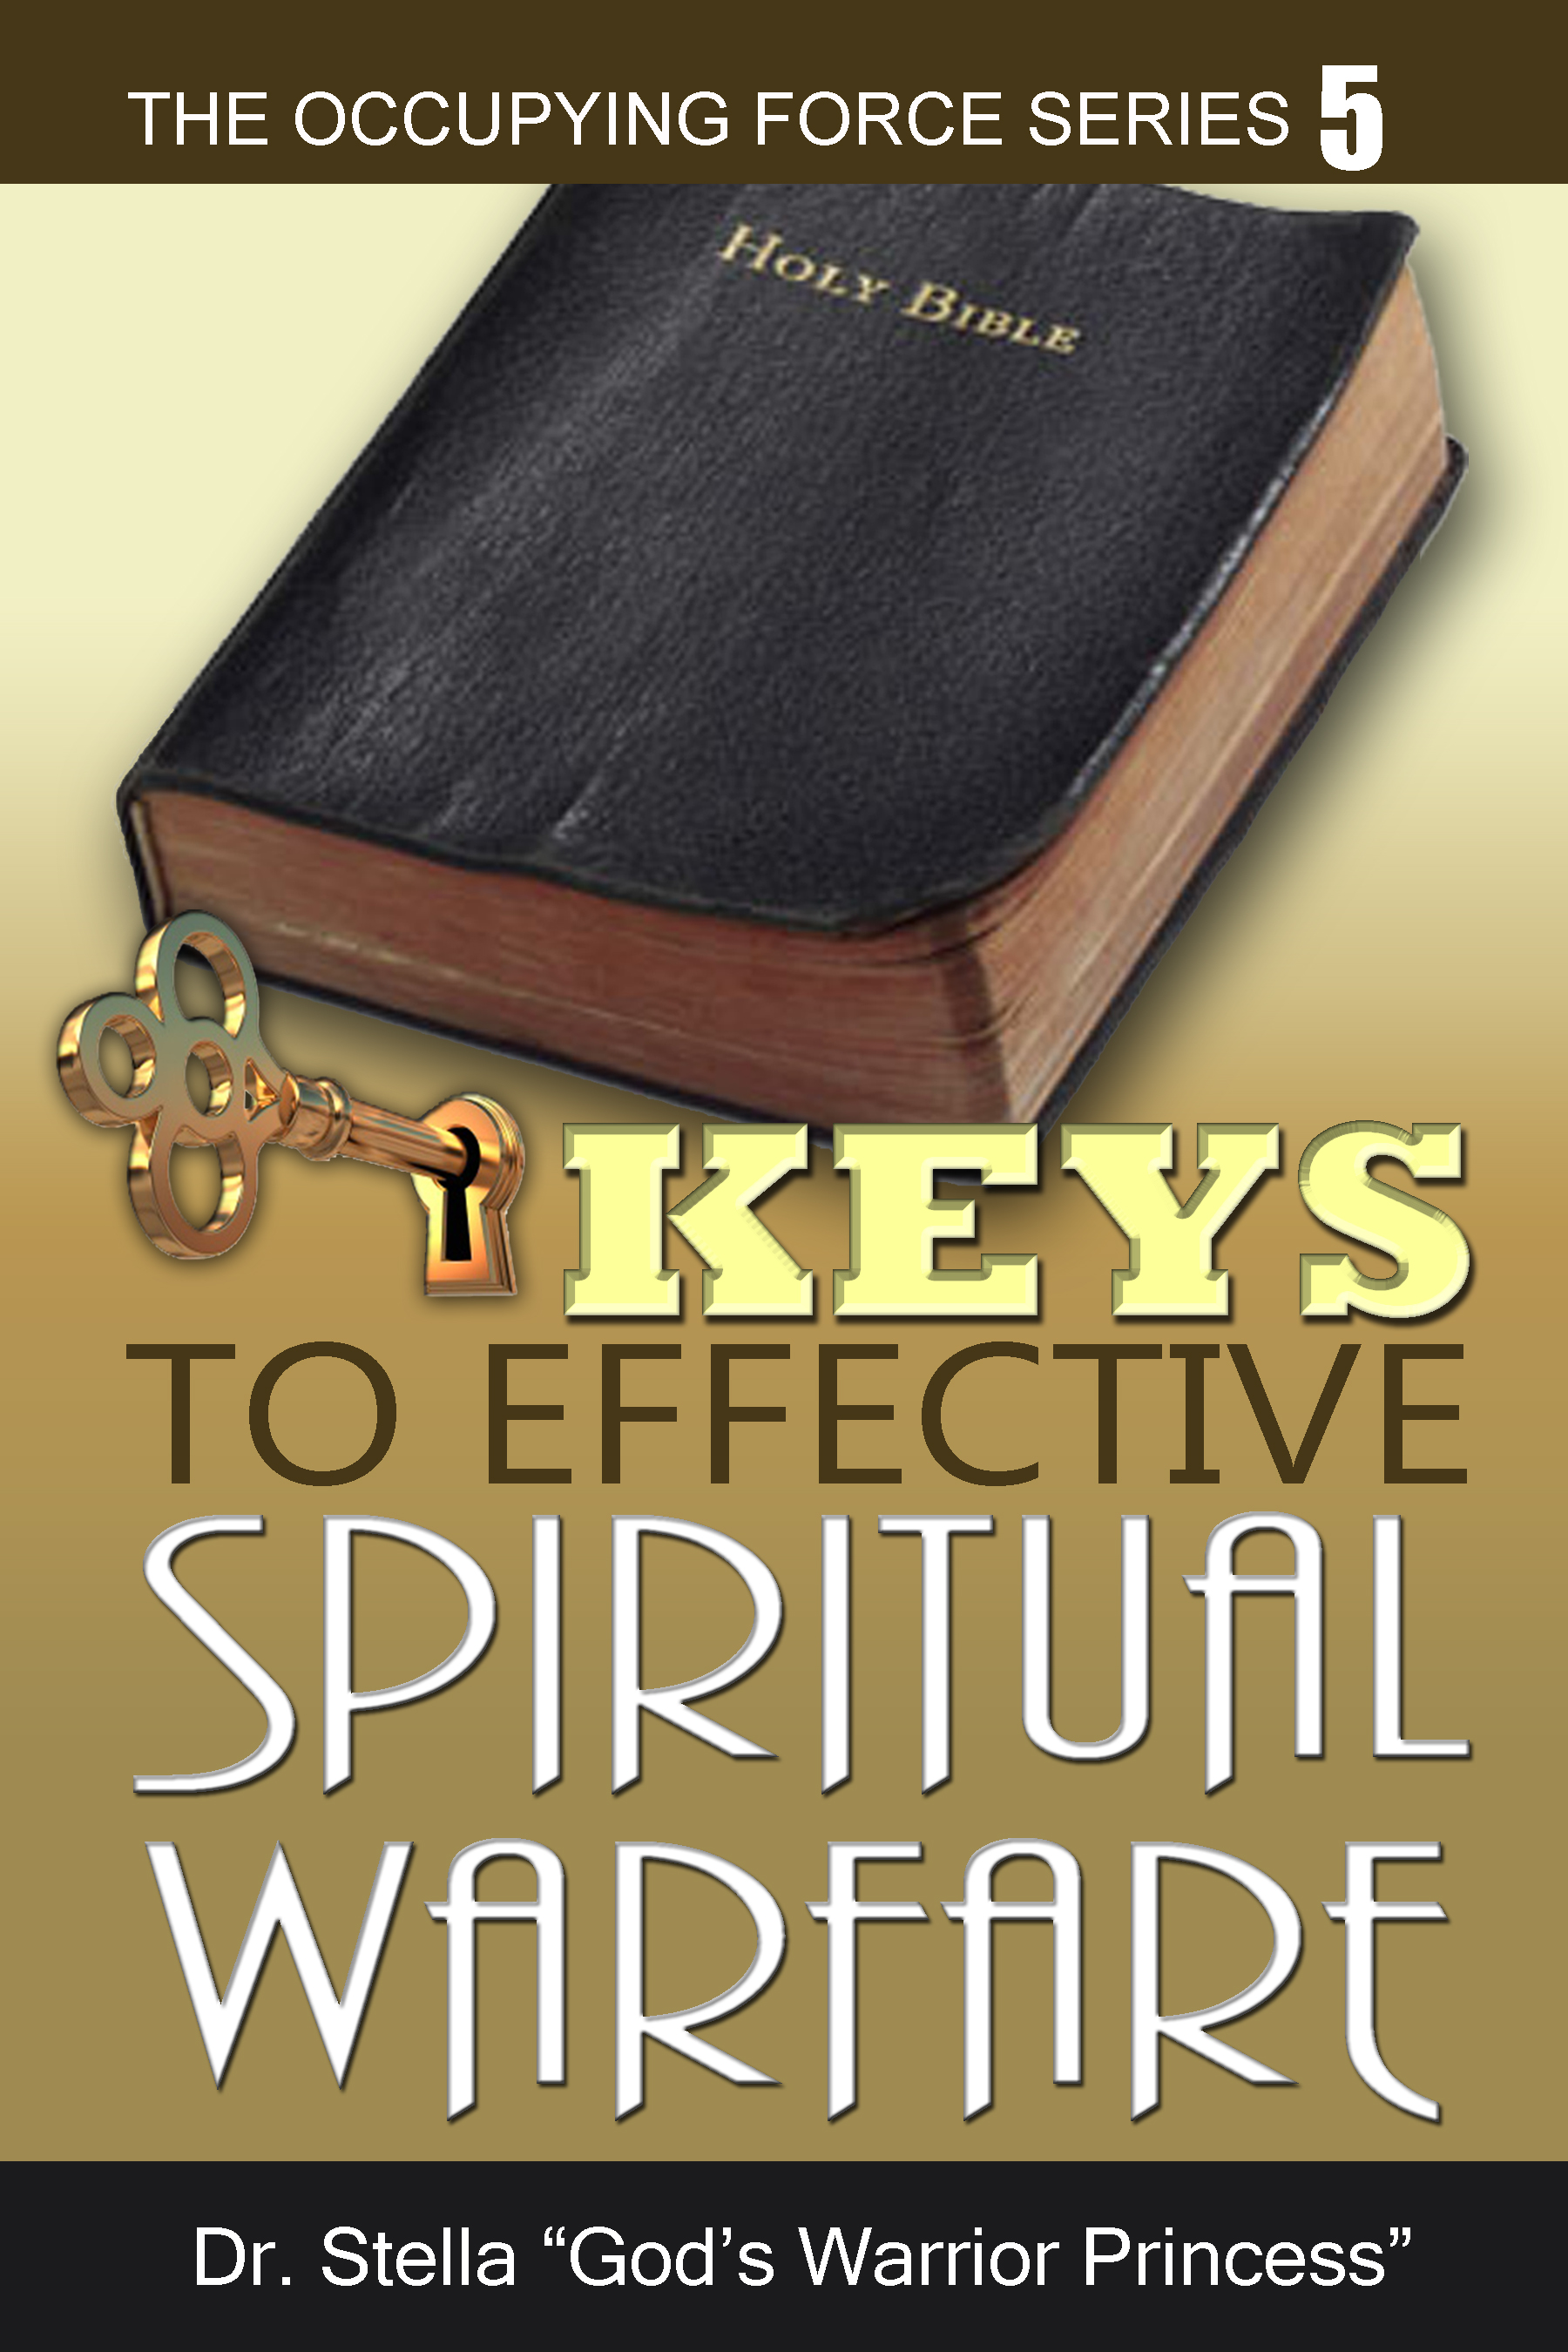 Eys to effective spiritual warfare by demarcus davenport